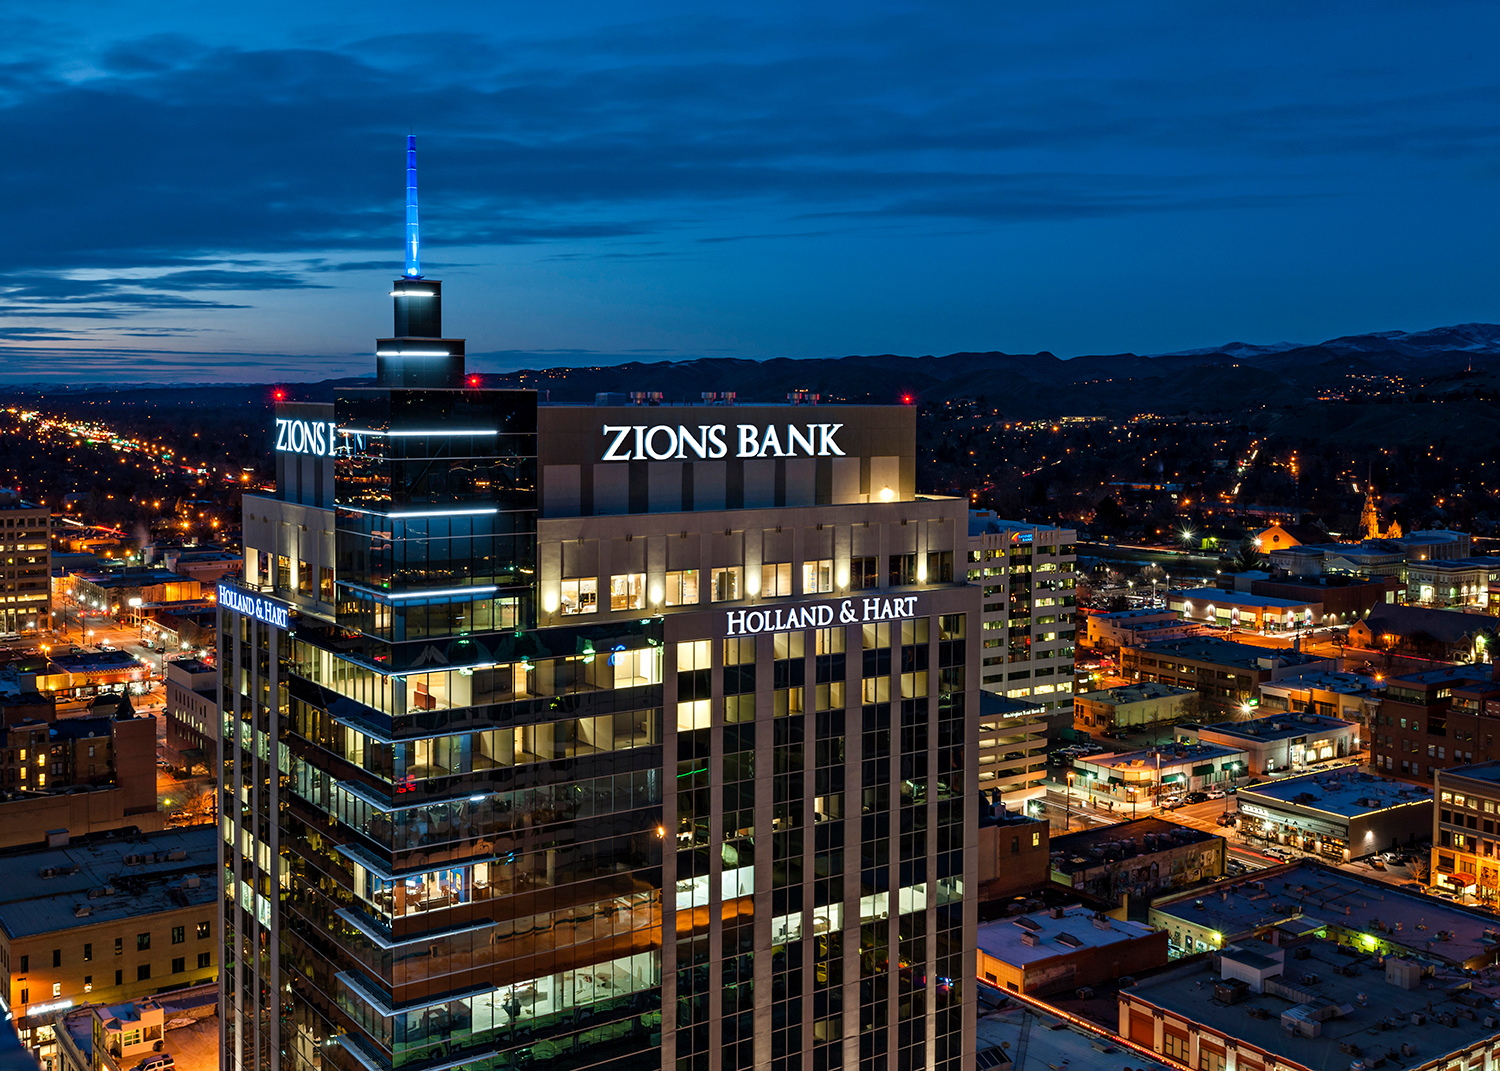 Zions Bank, in Boise, ID, was a curtainwall project completed by Tubelite using their dependable 400 Curtainwall system.  Photographer: Marc Walters Photography